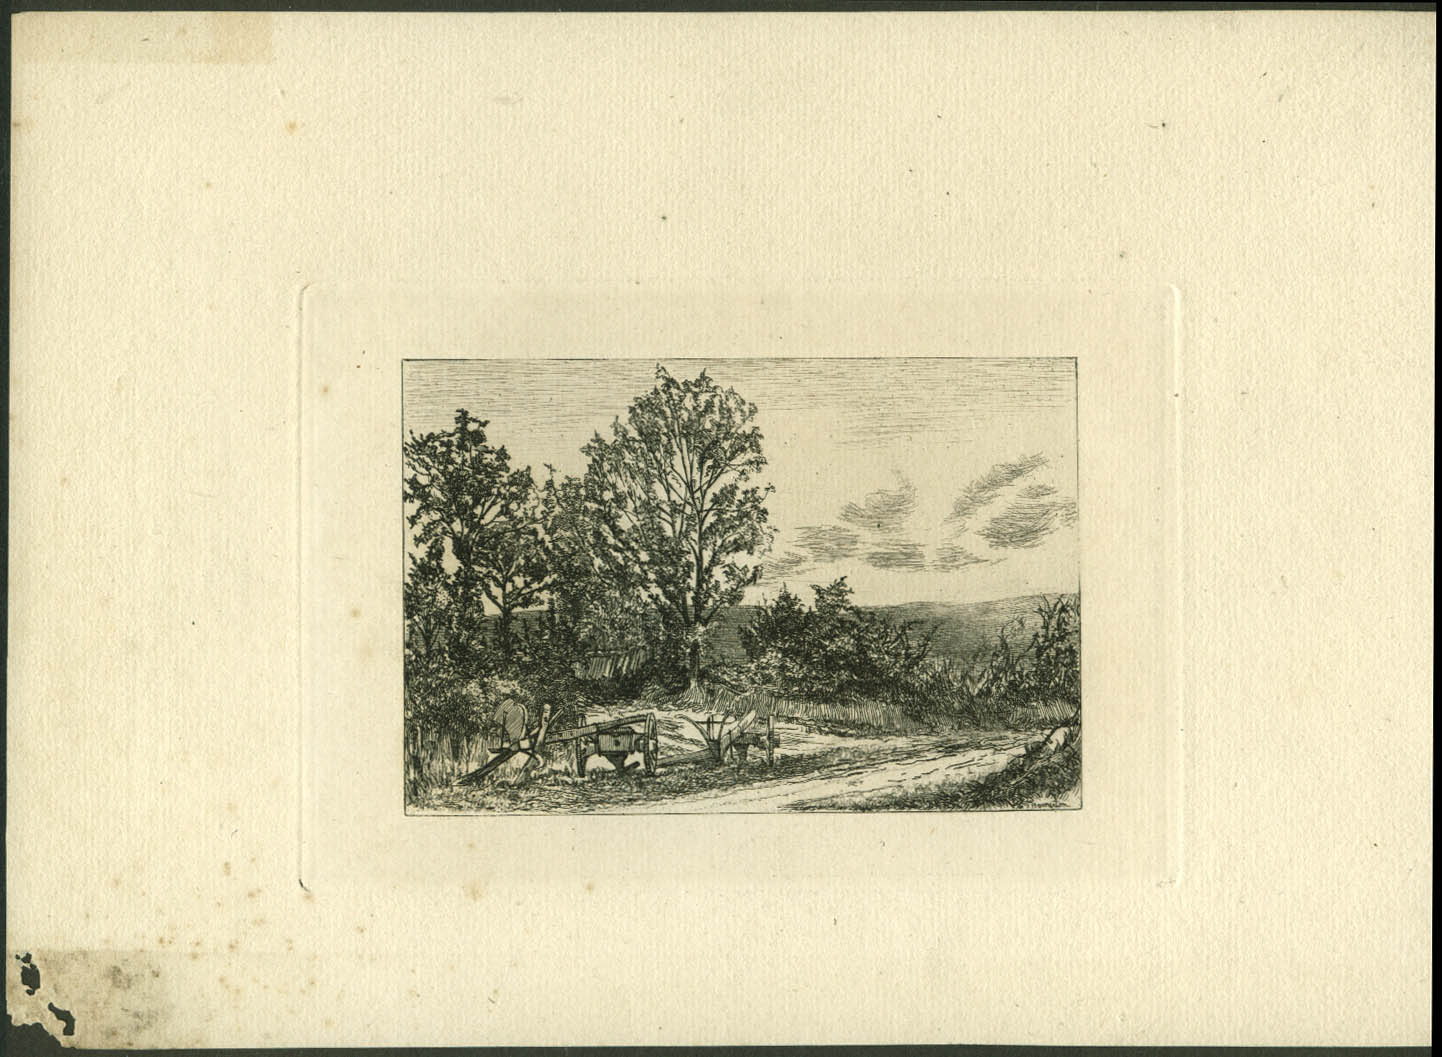 Image for Ploughs Left in Lane etching by Philip Gilbert Hamerton ca 1860s